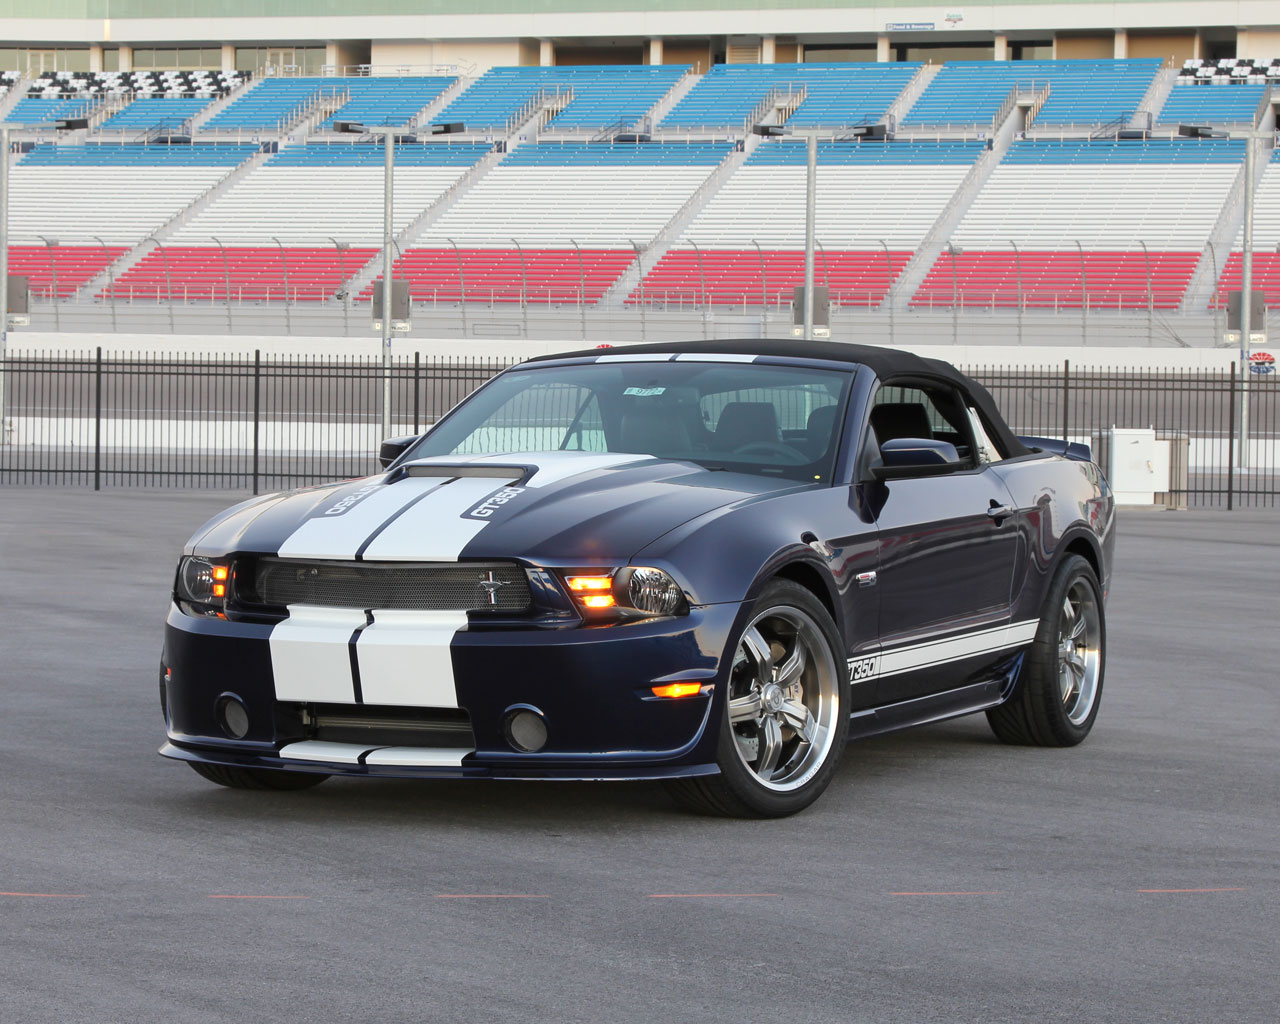 All Types 2010 mustang shelby : 2012 Ford Mustang Shelby GT350 Review - Top Speed